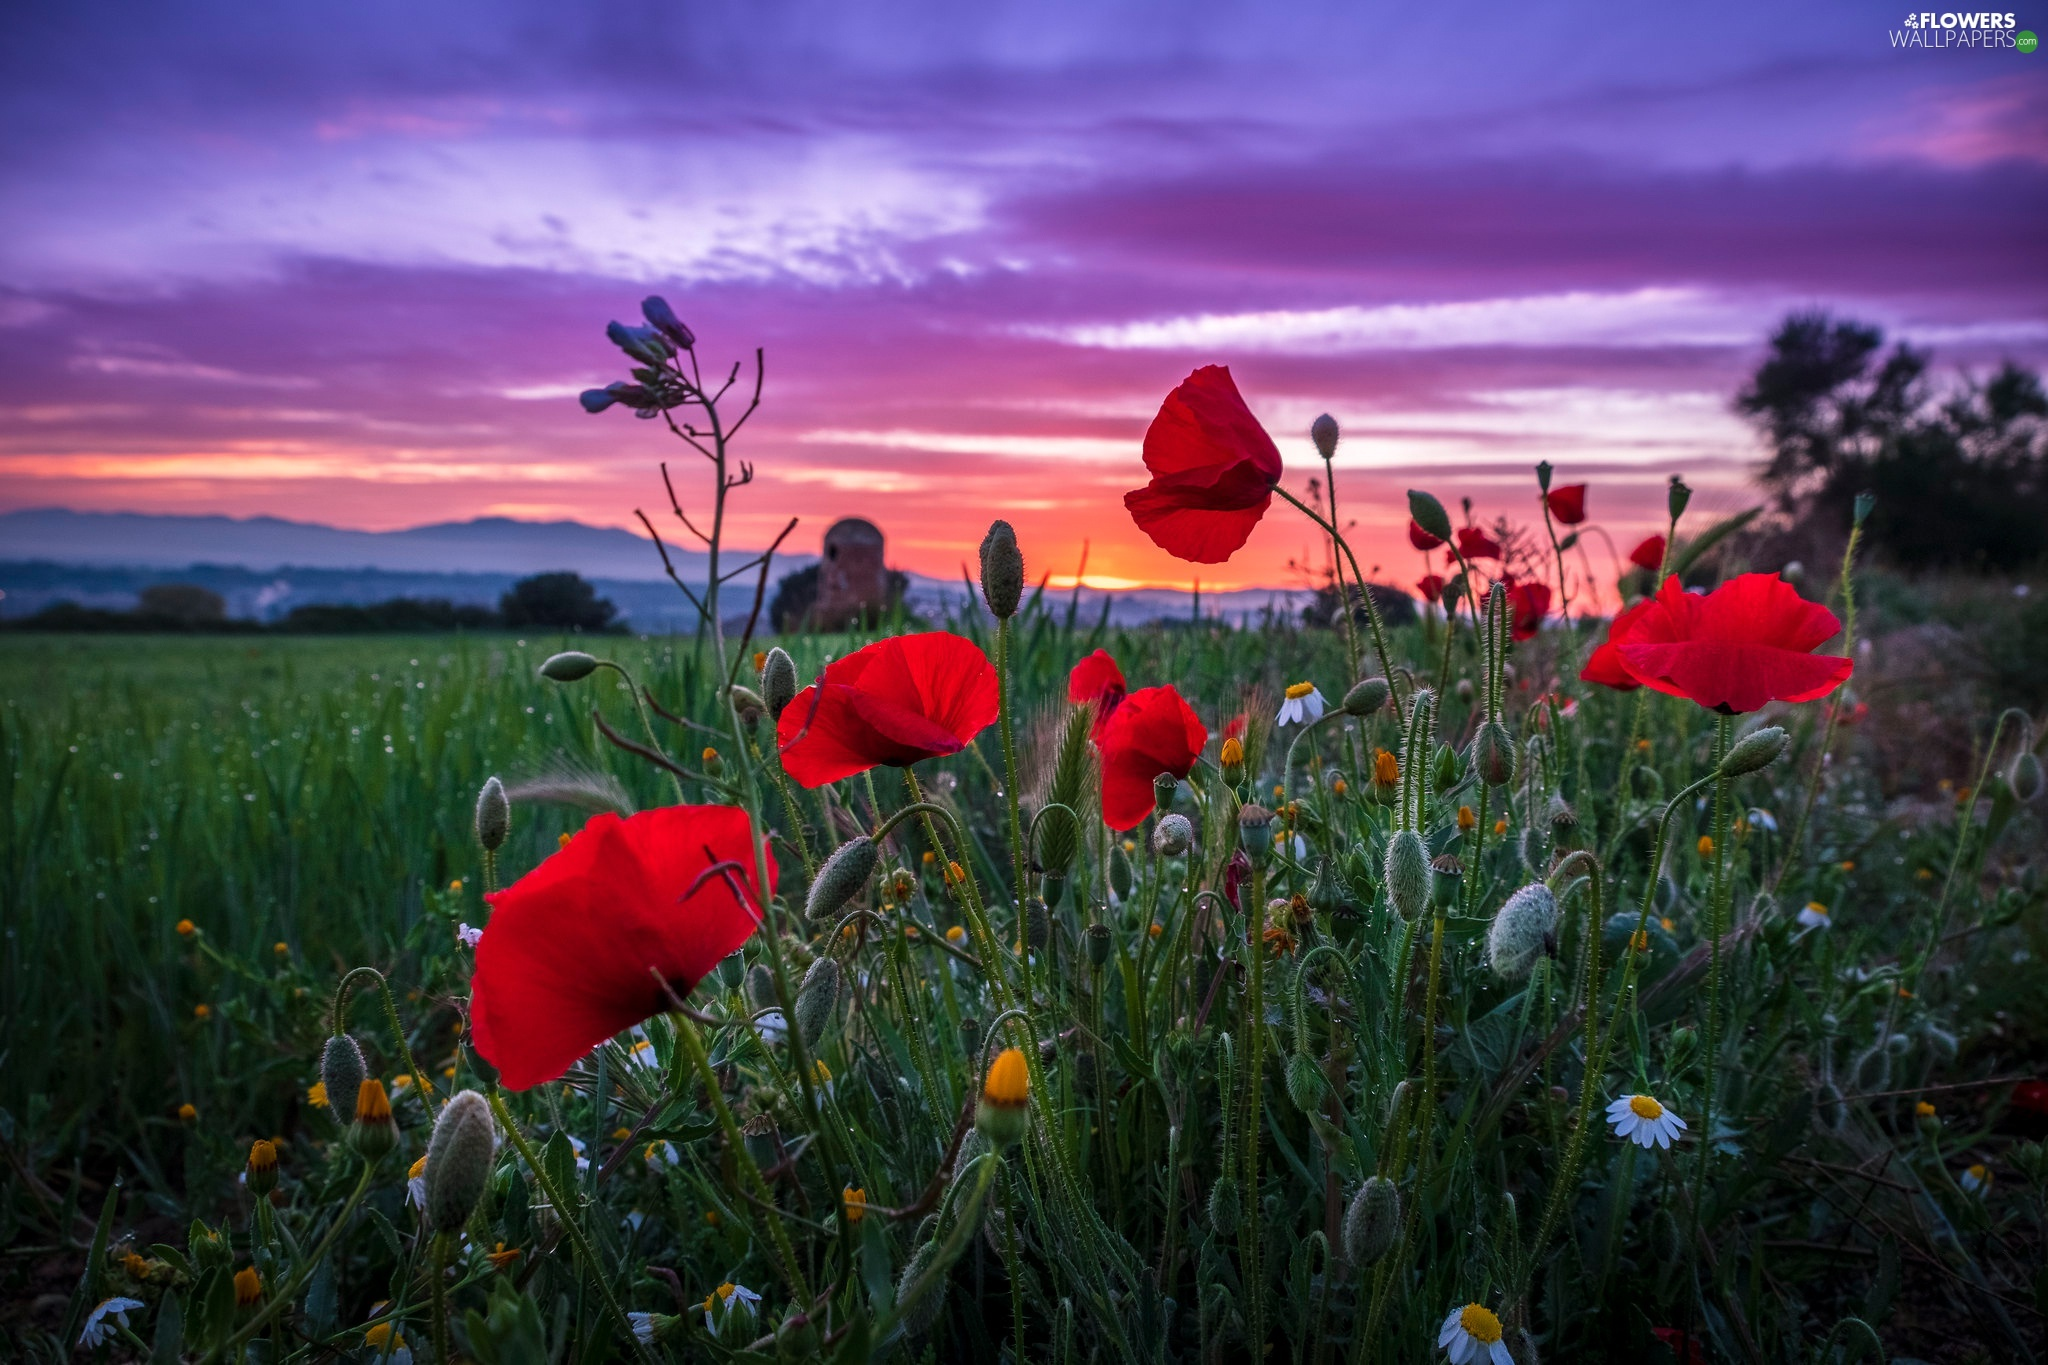 Sky, Great Sunsets, papavers, Field, Flowers